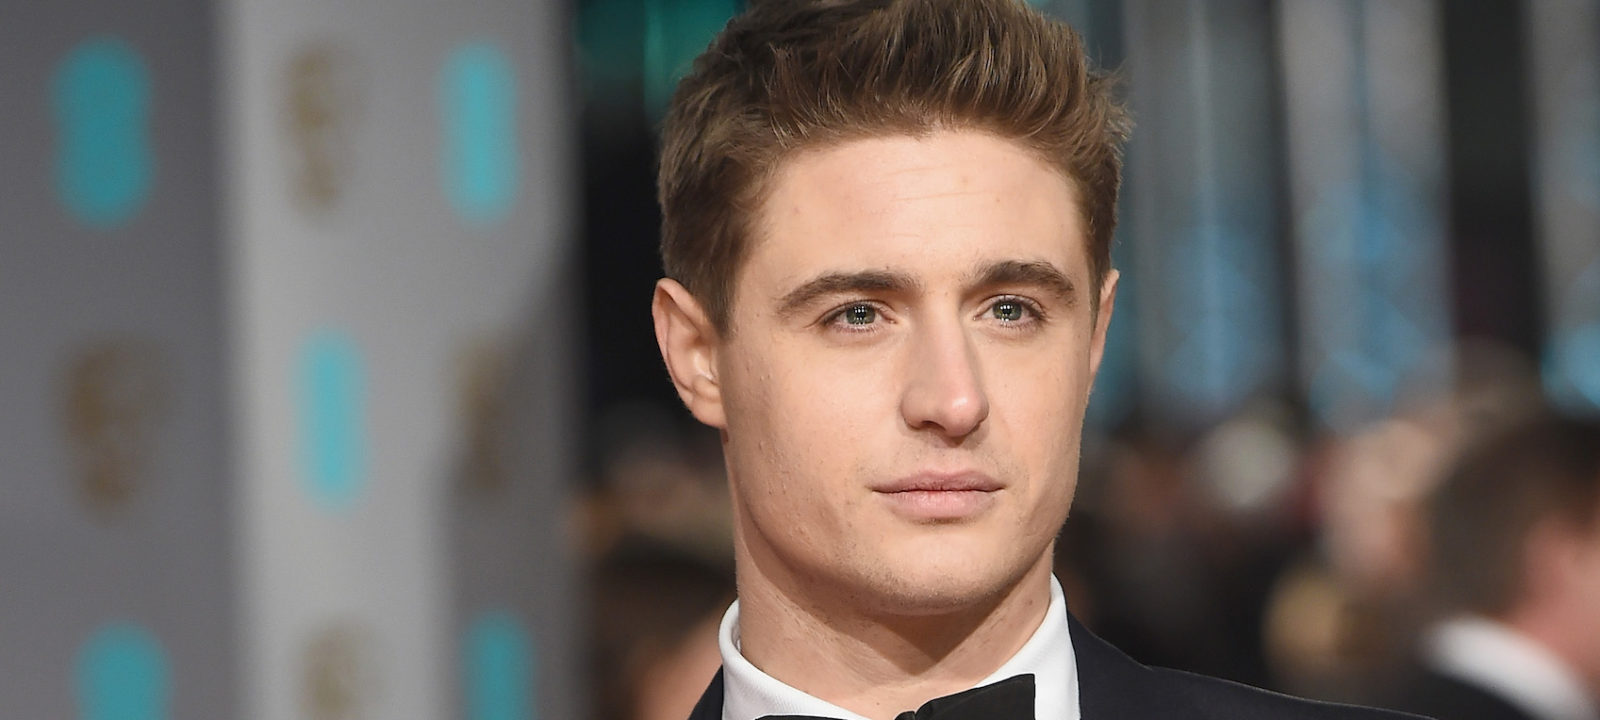 Max Irons attends the EE British Academy Film Awards at the Royal Opera House on February 14, 2016 in London, England.